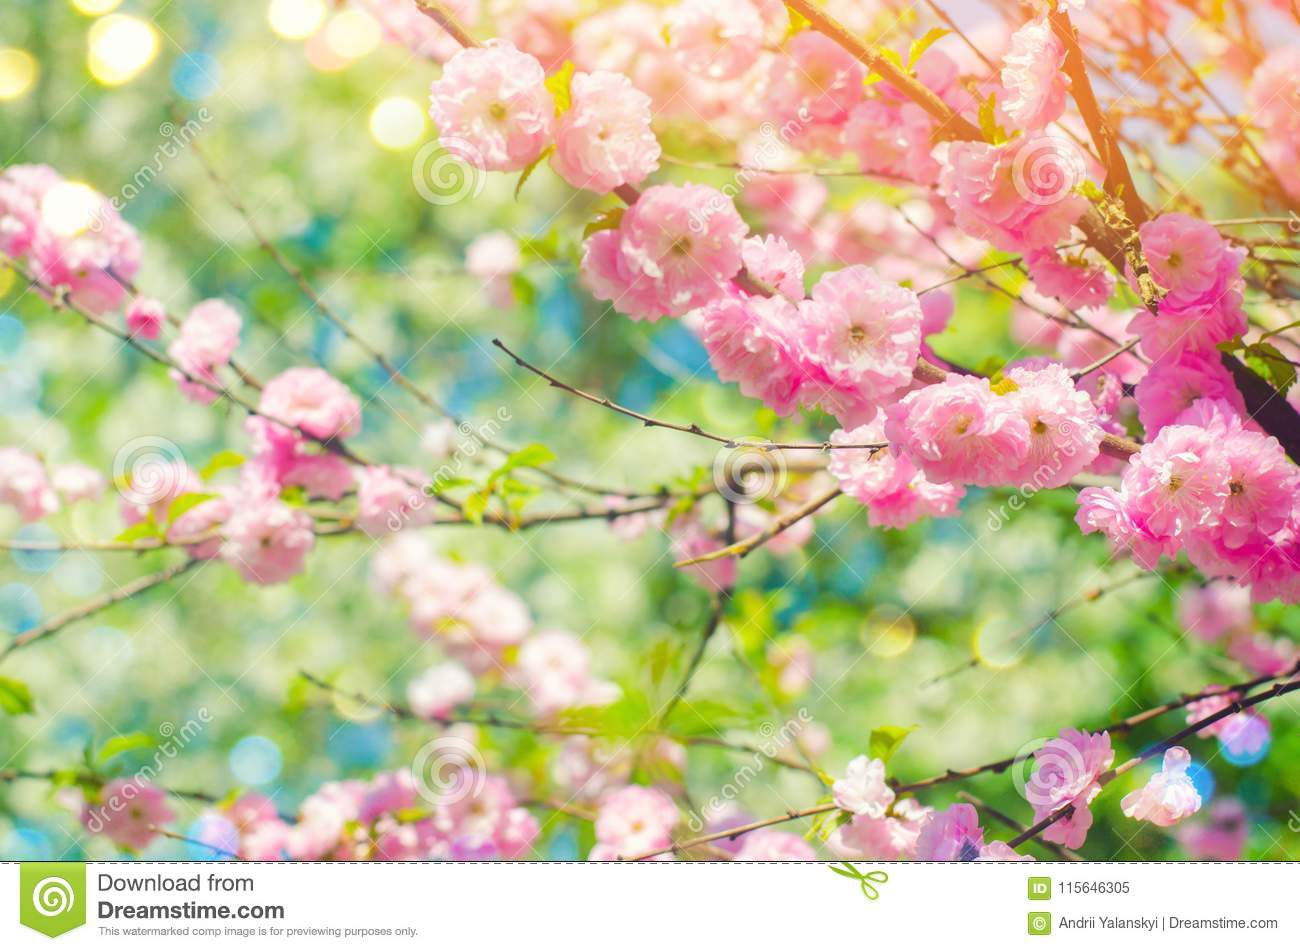 Pink bush blossoms in spring with pink flowers. natural wallpaper. concept of spring. background for design